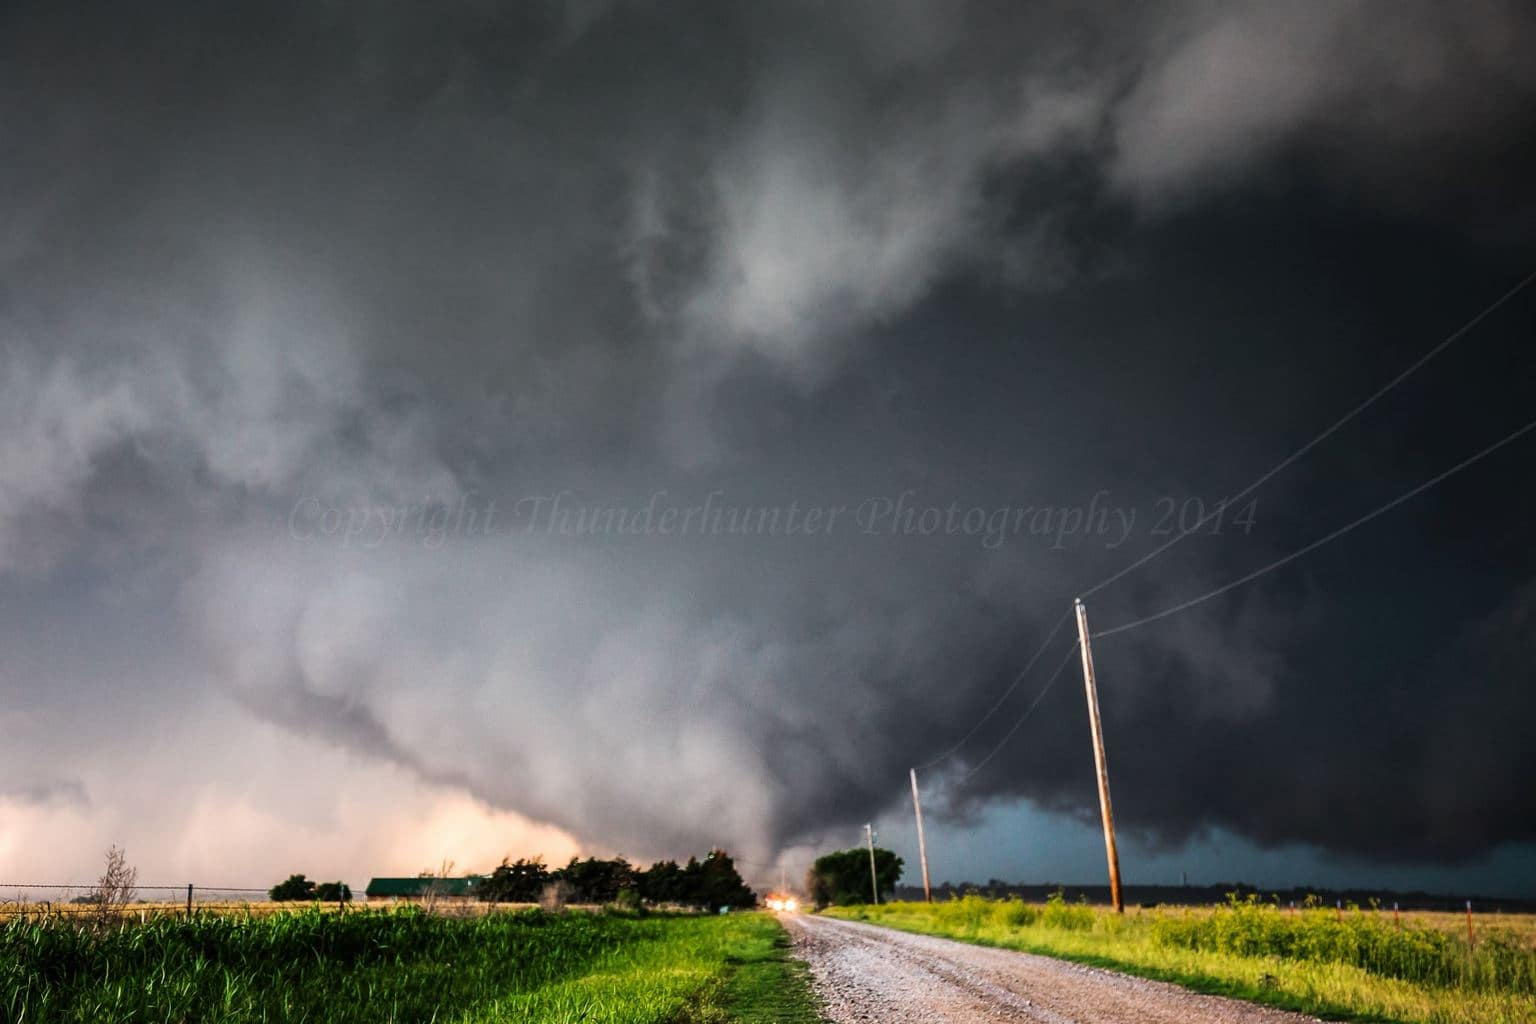 The deadly El Reno tornado touches down under a mesocyclone that was almost on the ground. This tornado quickly became multi-vortex, then transformed into a large wedge before further intensifying and growing into the widest tornado ever measured at 4.2km wide.